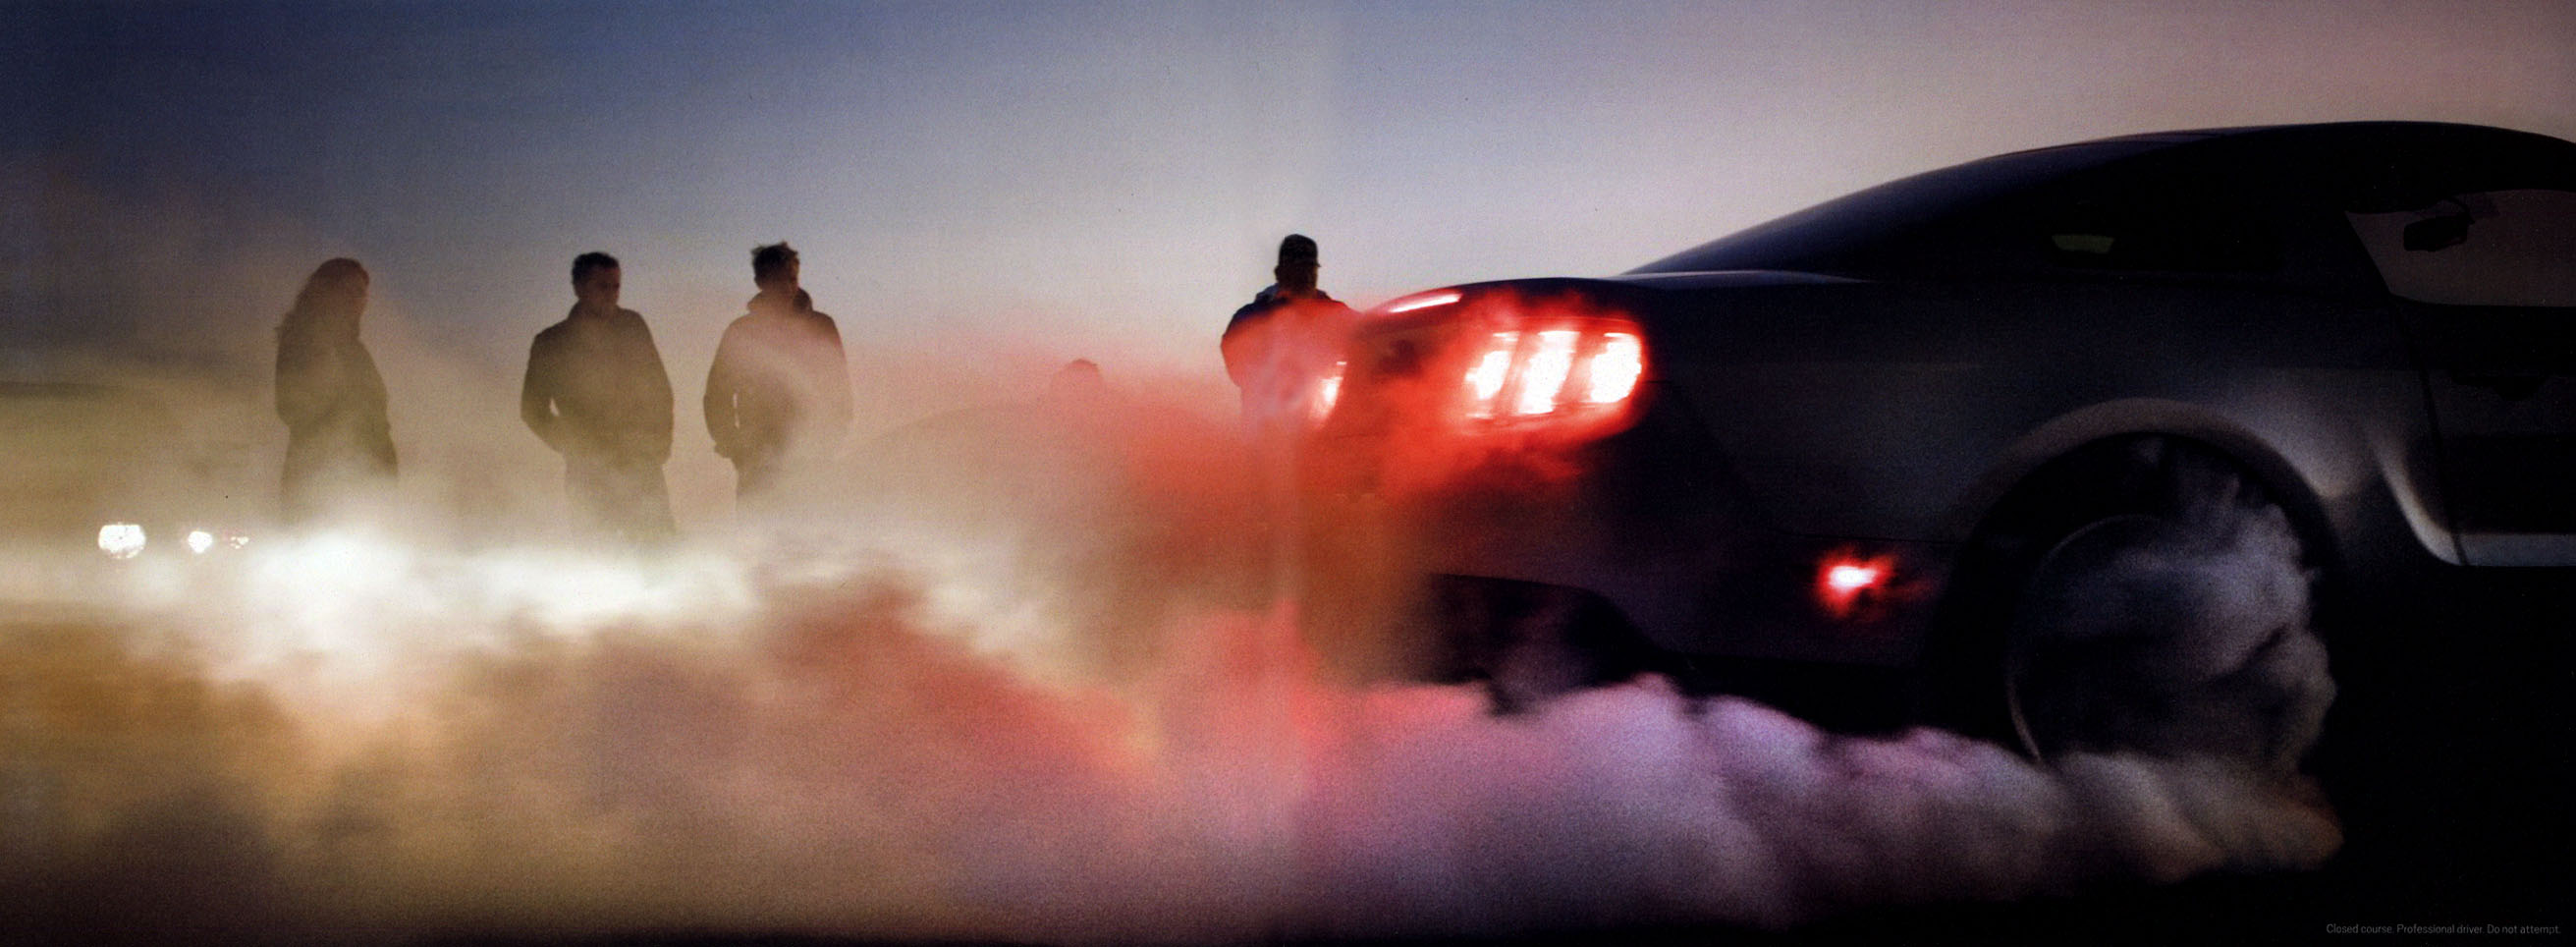 Ford Mustang 2015 Uk Pictures besides 7 besides Ford Mustang 2 moreover Wallpaper 03 furthermore Ford Mustang V 2014 229449. on ford mustang